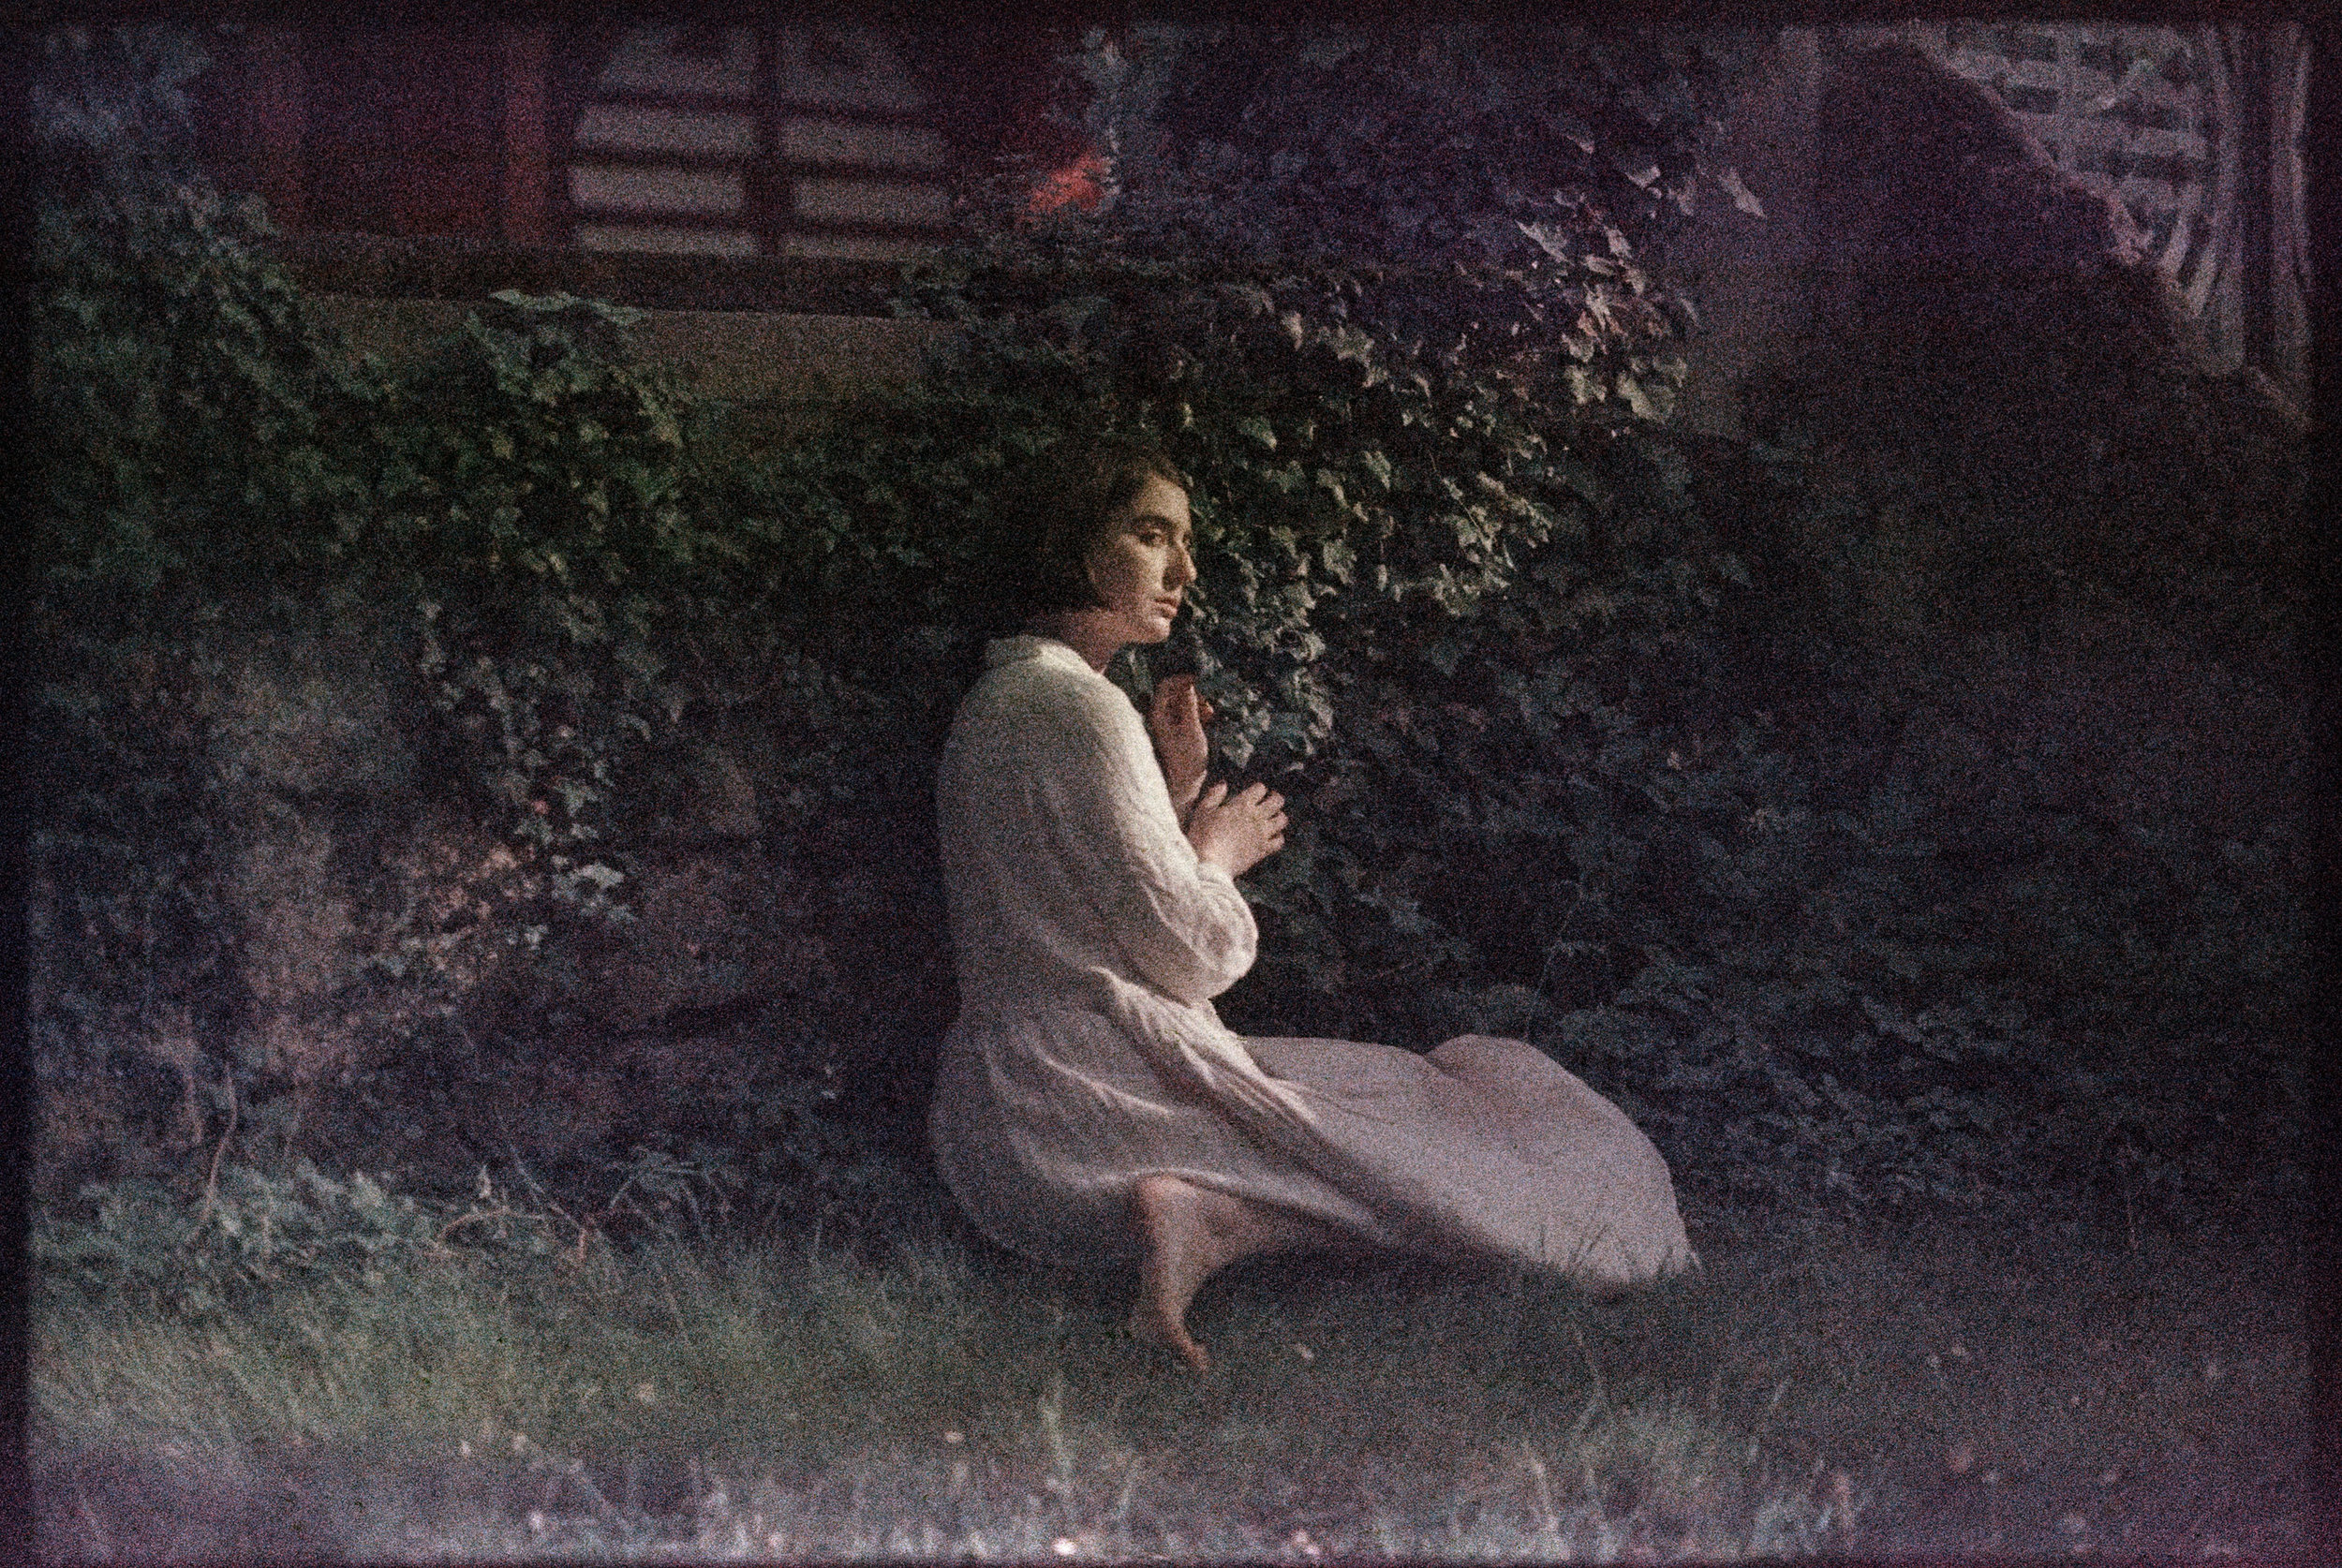 self portrait as Joan of Arc in her garden (2018)  shot on expired Kodak 35mm film